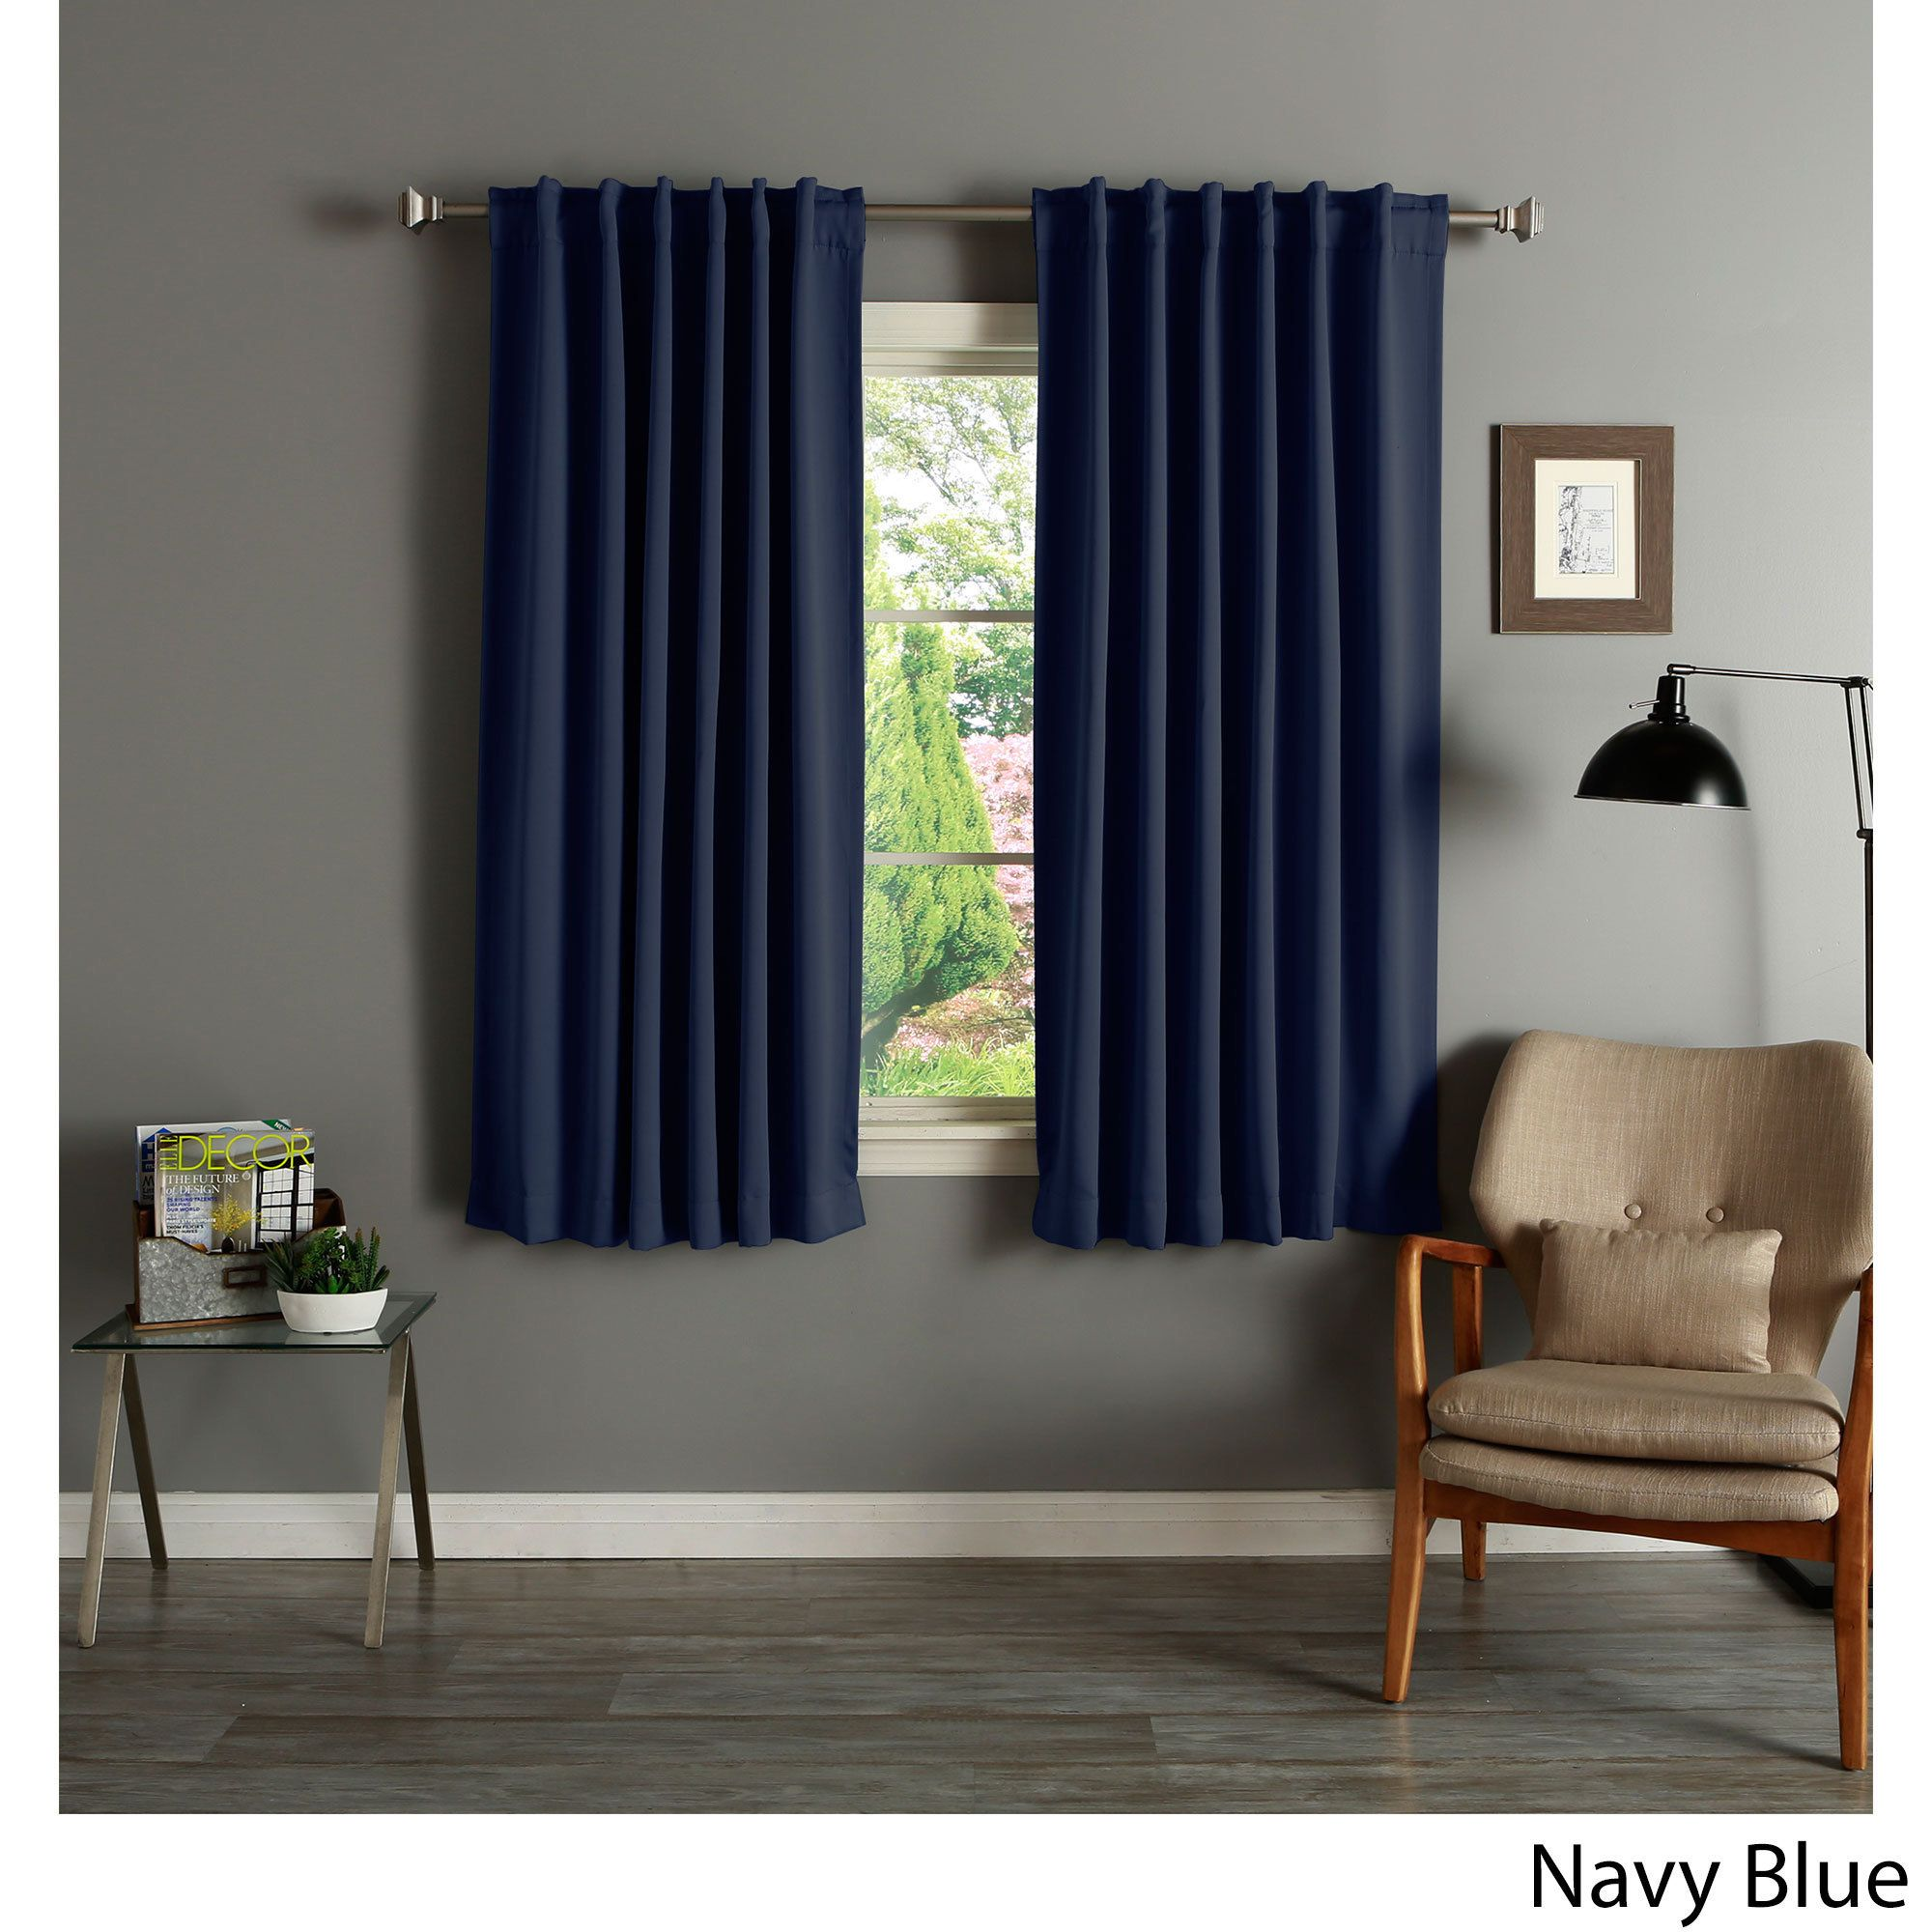 Small Of Navy Blue Curtains